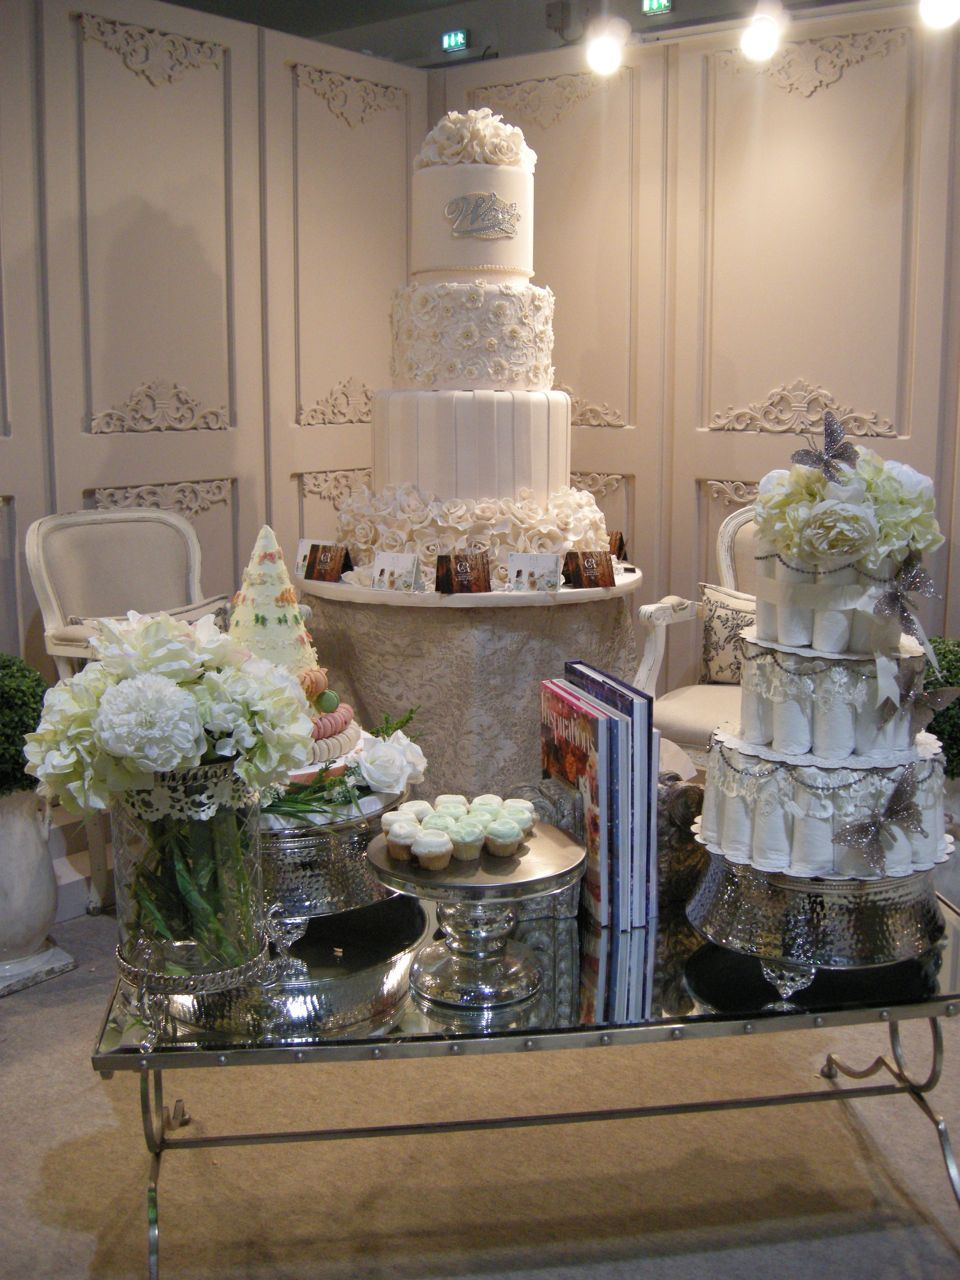 Bride Show Dubai Wedding Planning & Production Exclusive